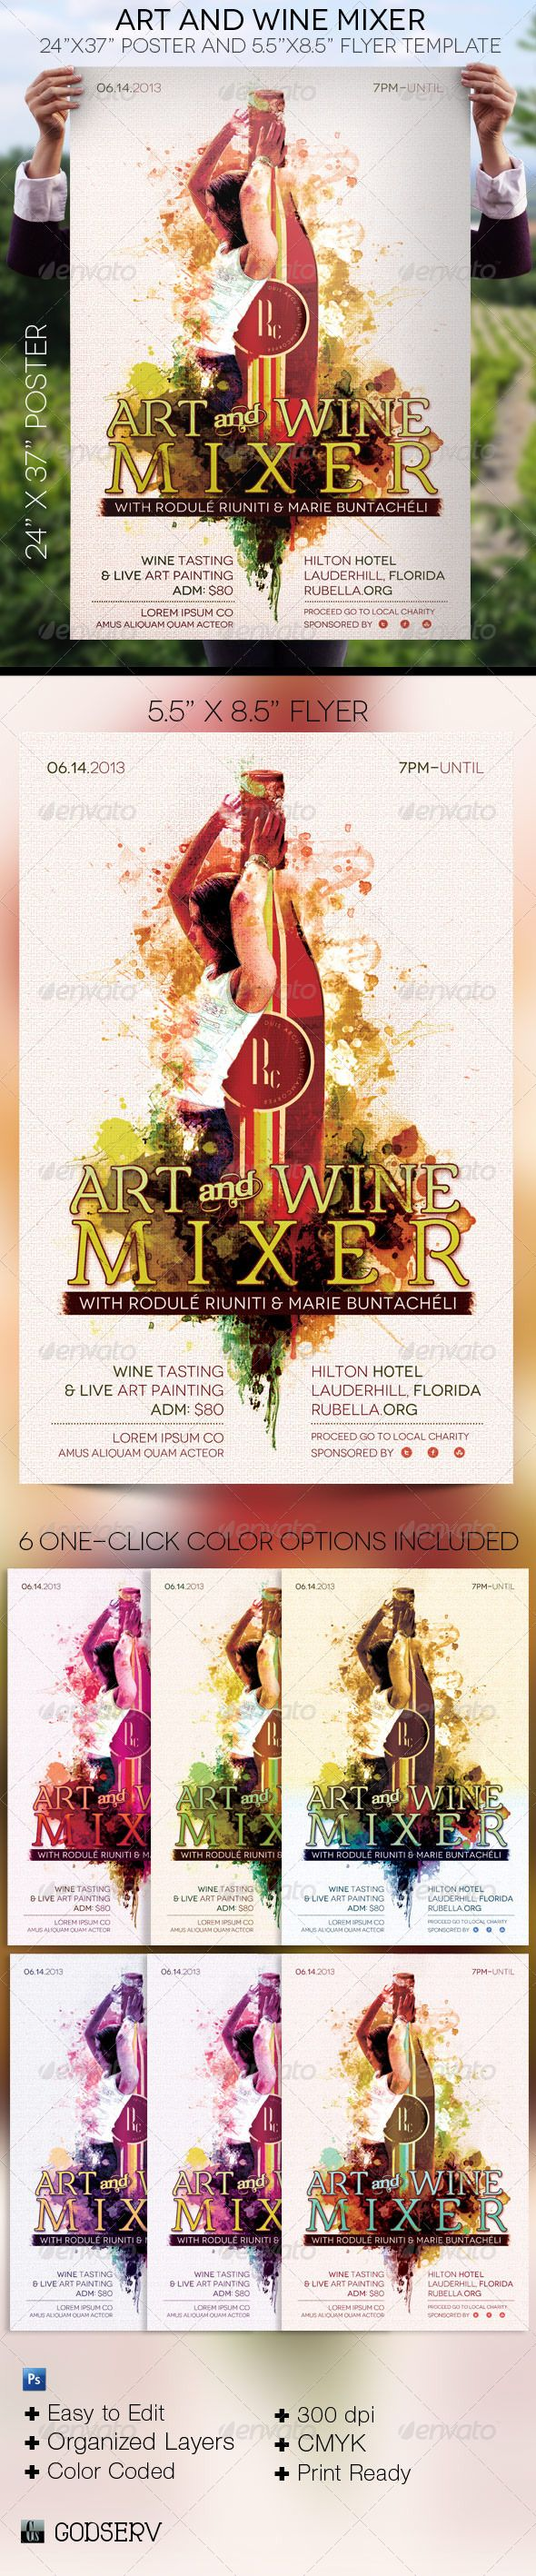 best images about print templates fonts flyer art wine mixer poster flyer template